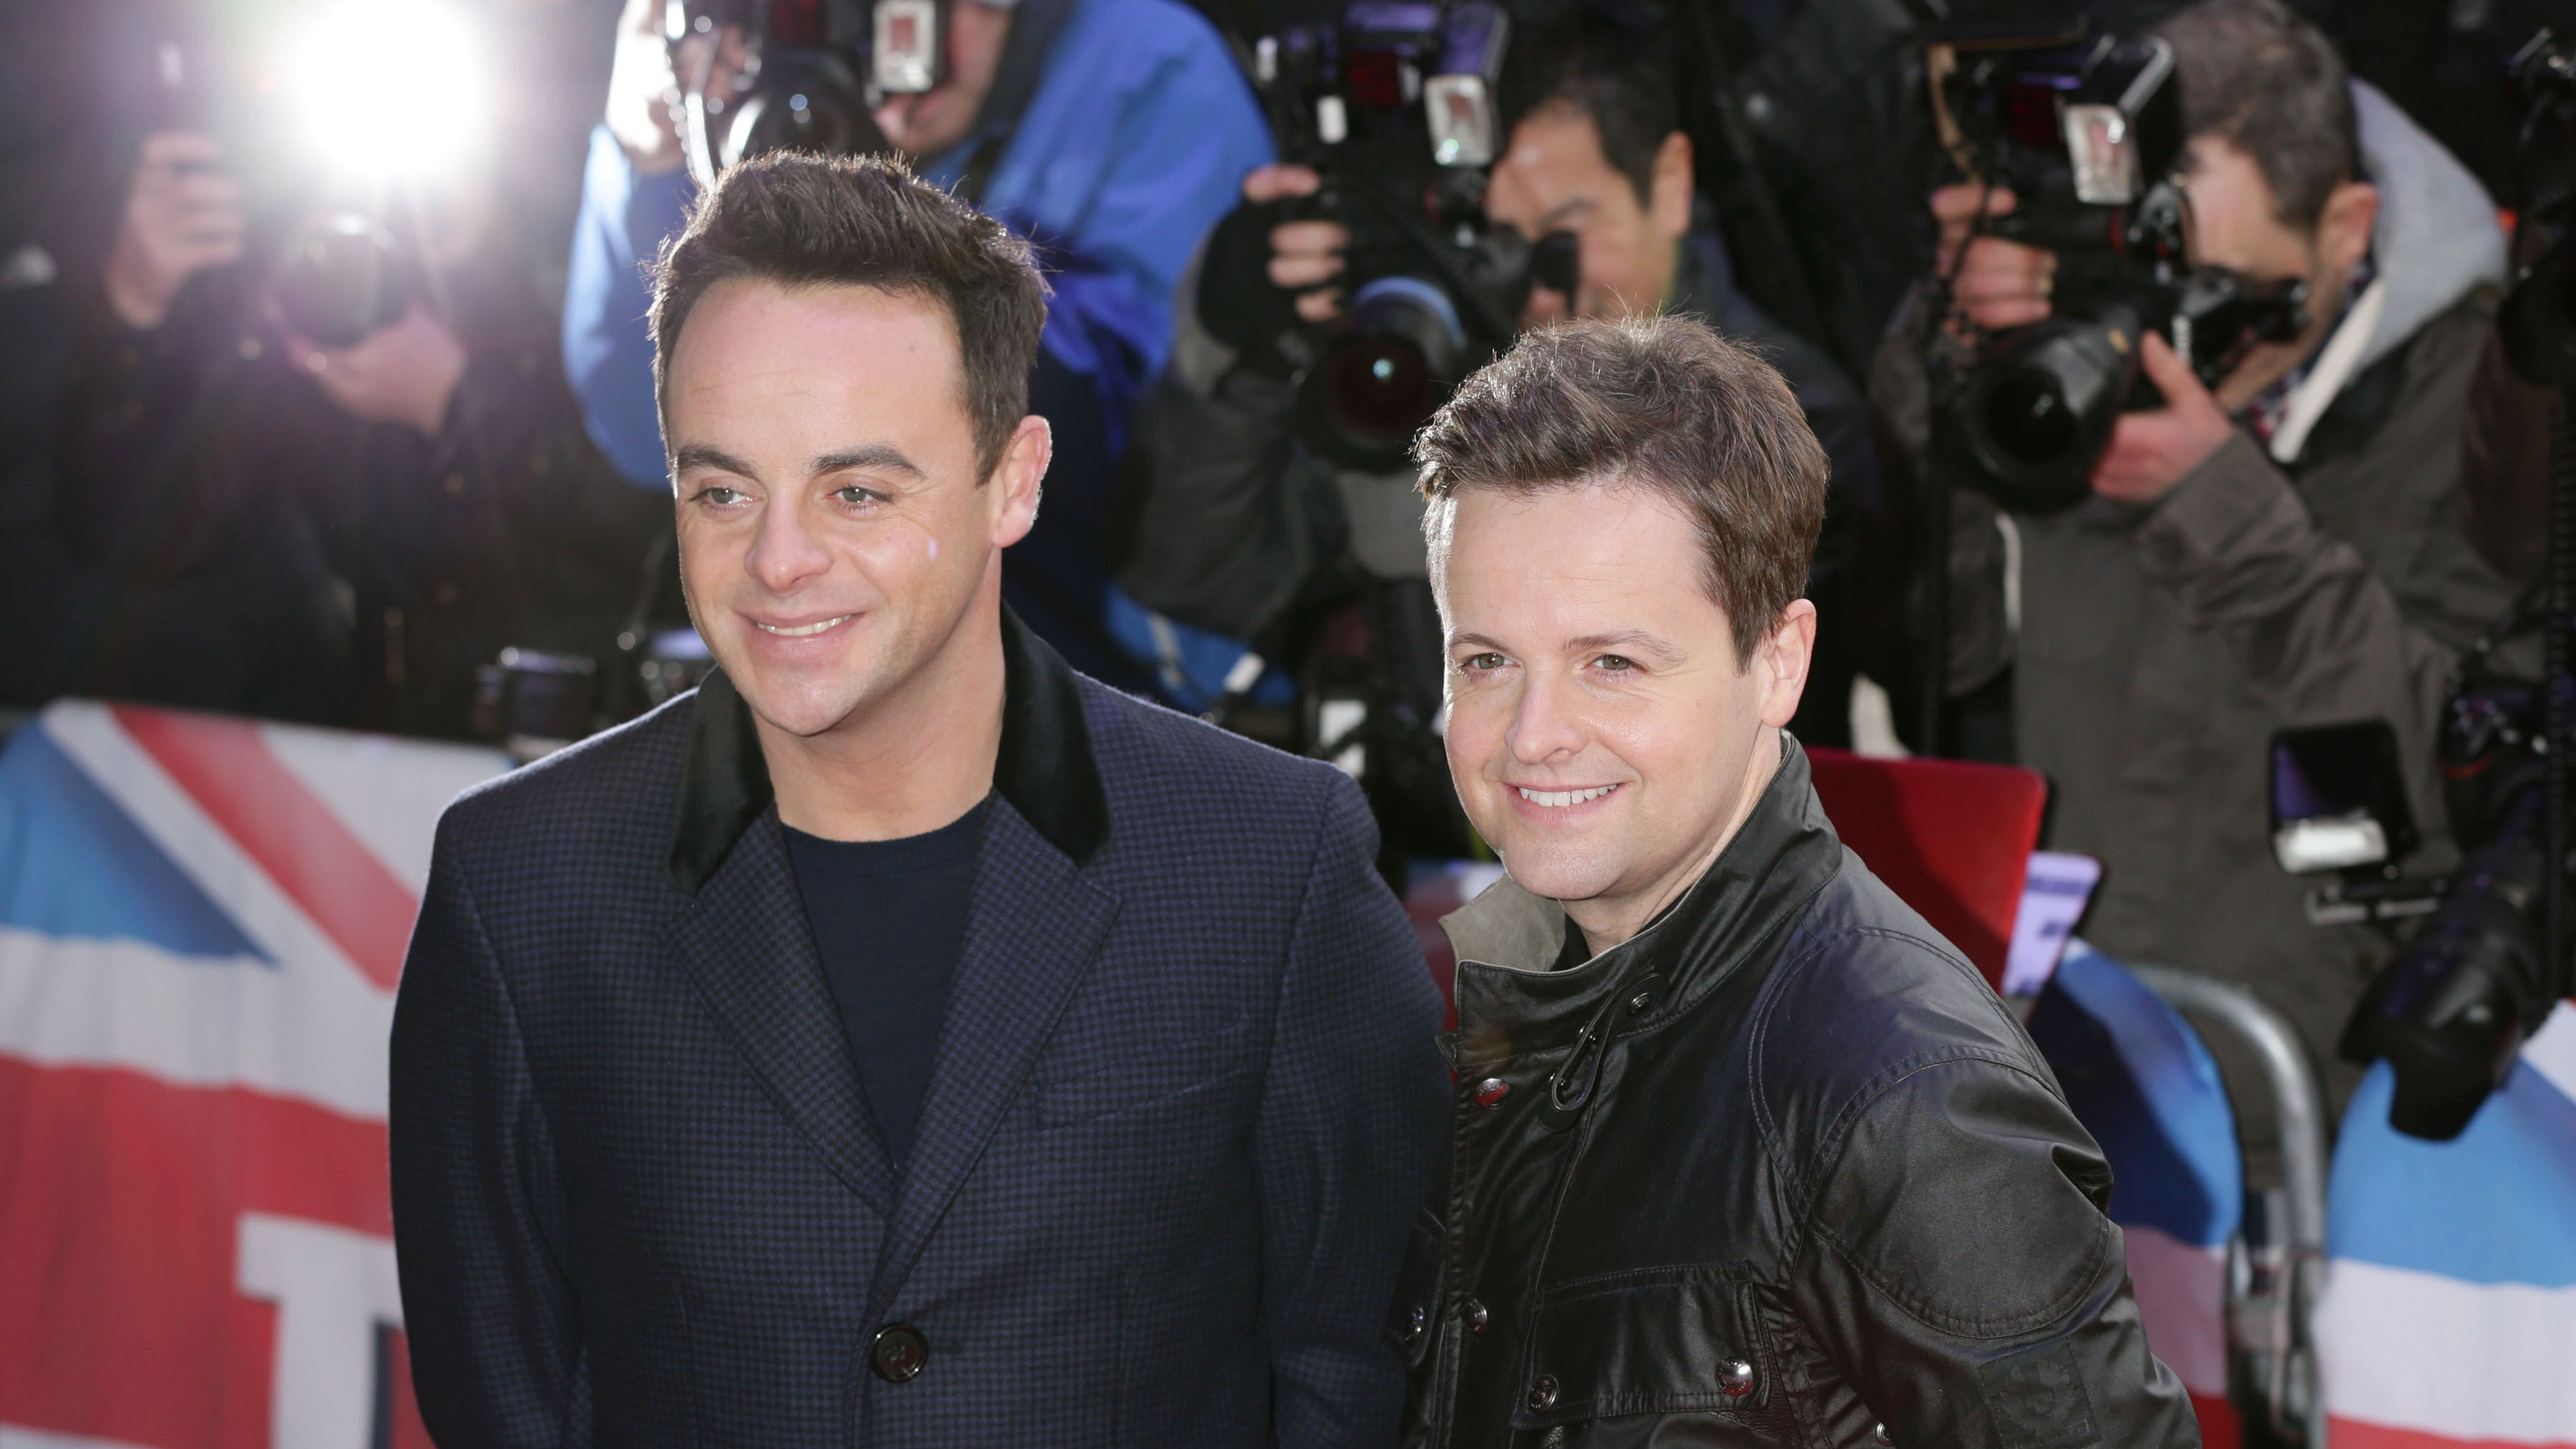 Britain's Got Talent looking 'spectacular' as Dec prepares to host solo